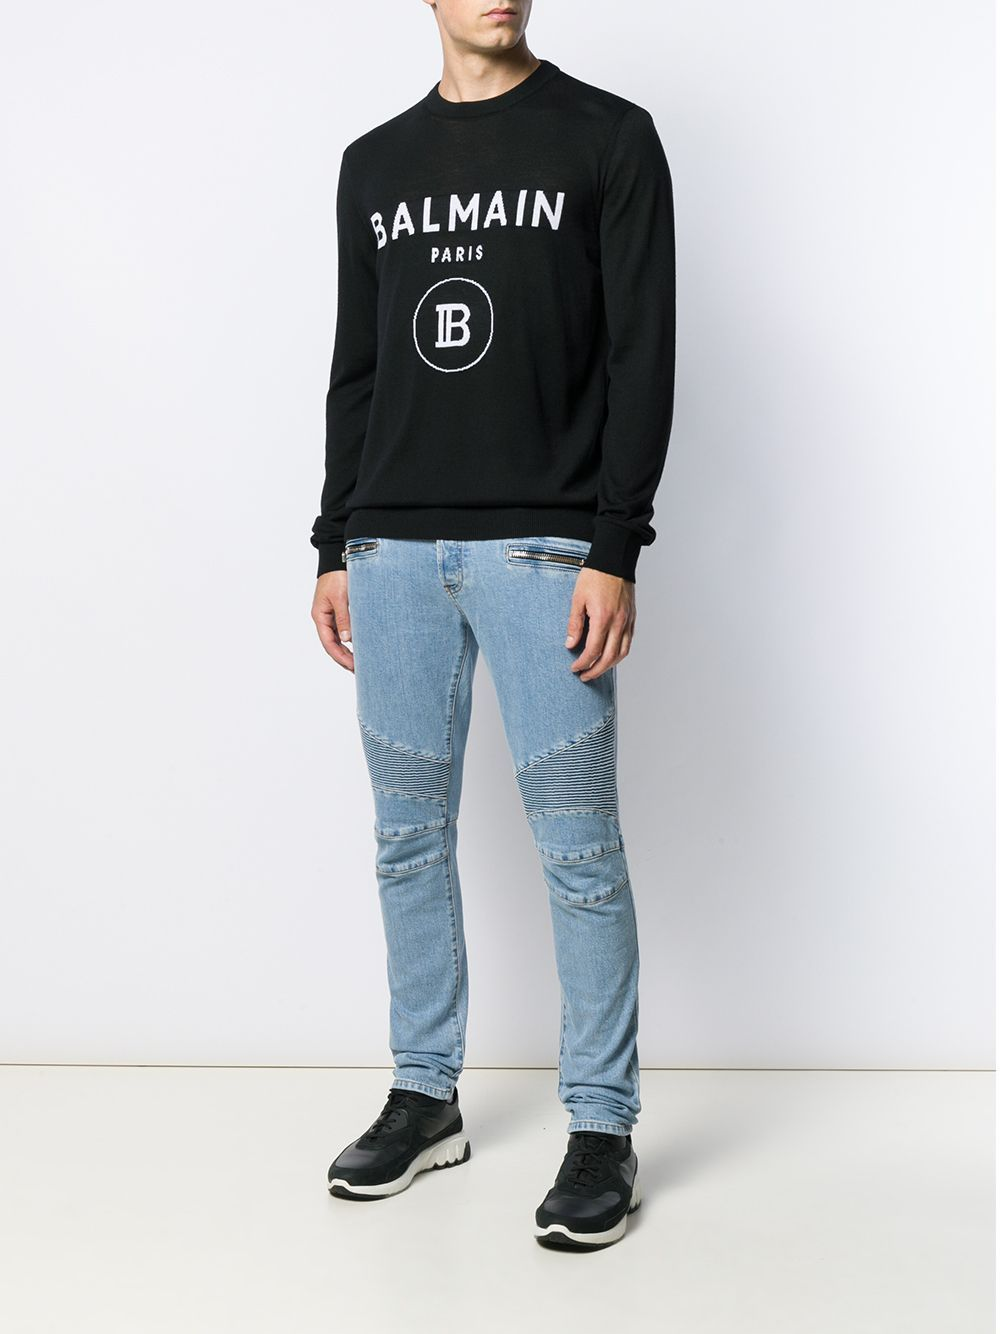 BALMAIN logo knitted crew neck sweatshirt black/white